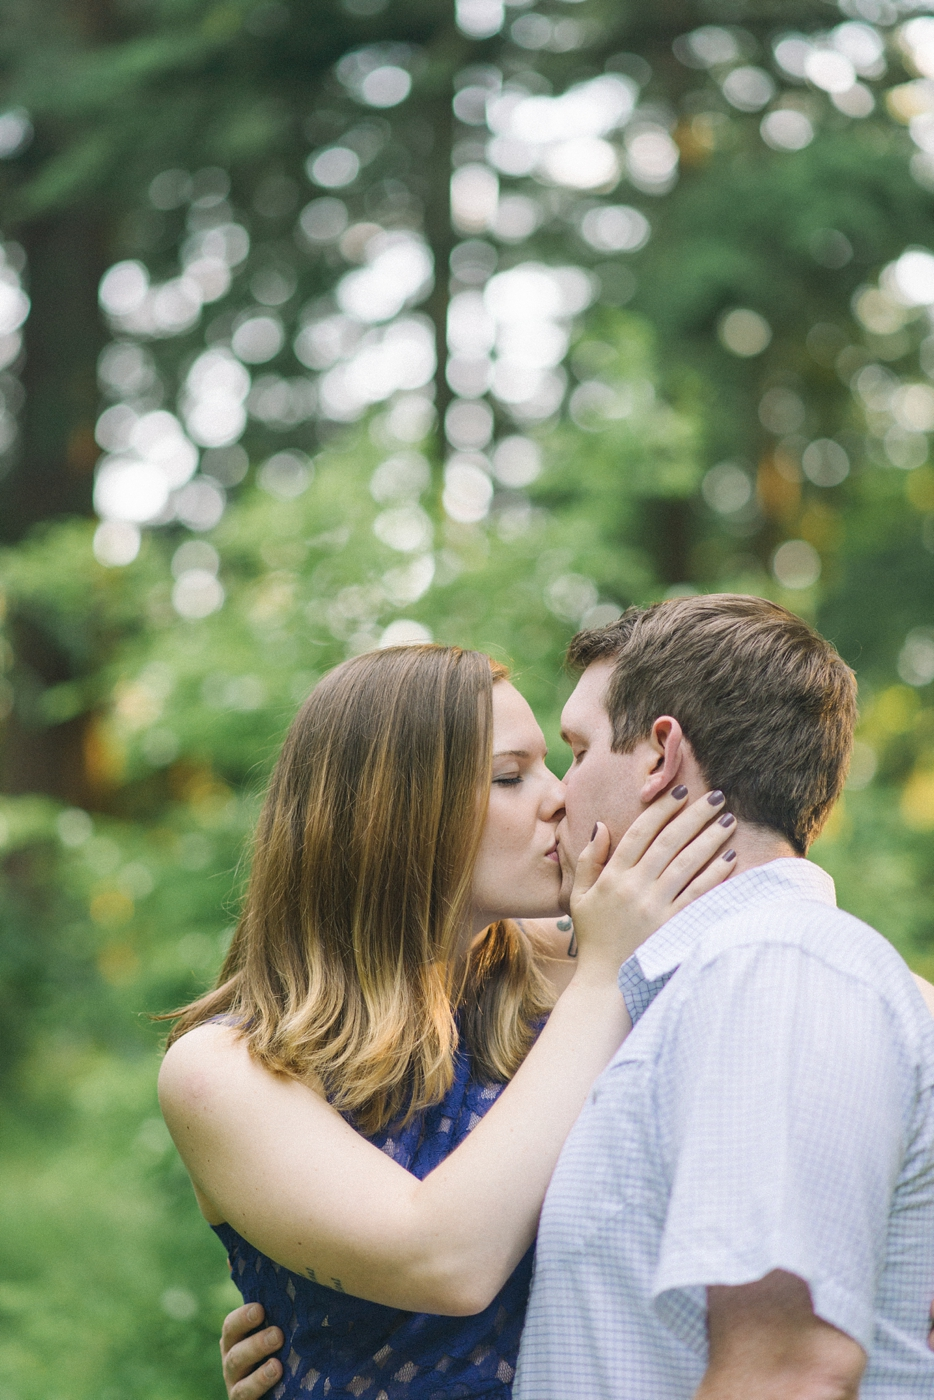 engagement-photography-portland-oregon-hoyt-arboretum-washington-park-romantic-kiss-couples-portraits-nature-natural-light-forest-field-shelley-marie-photo-13